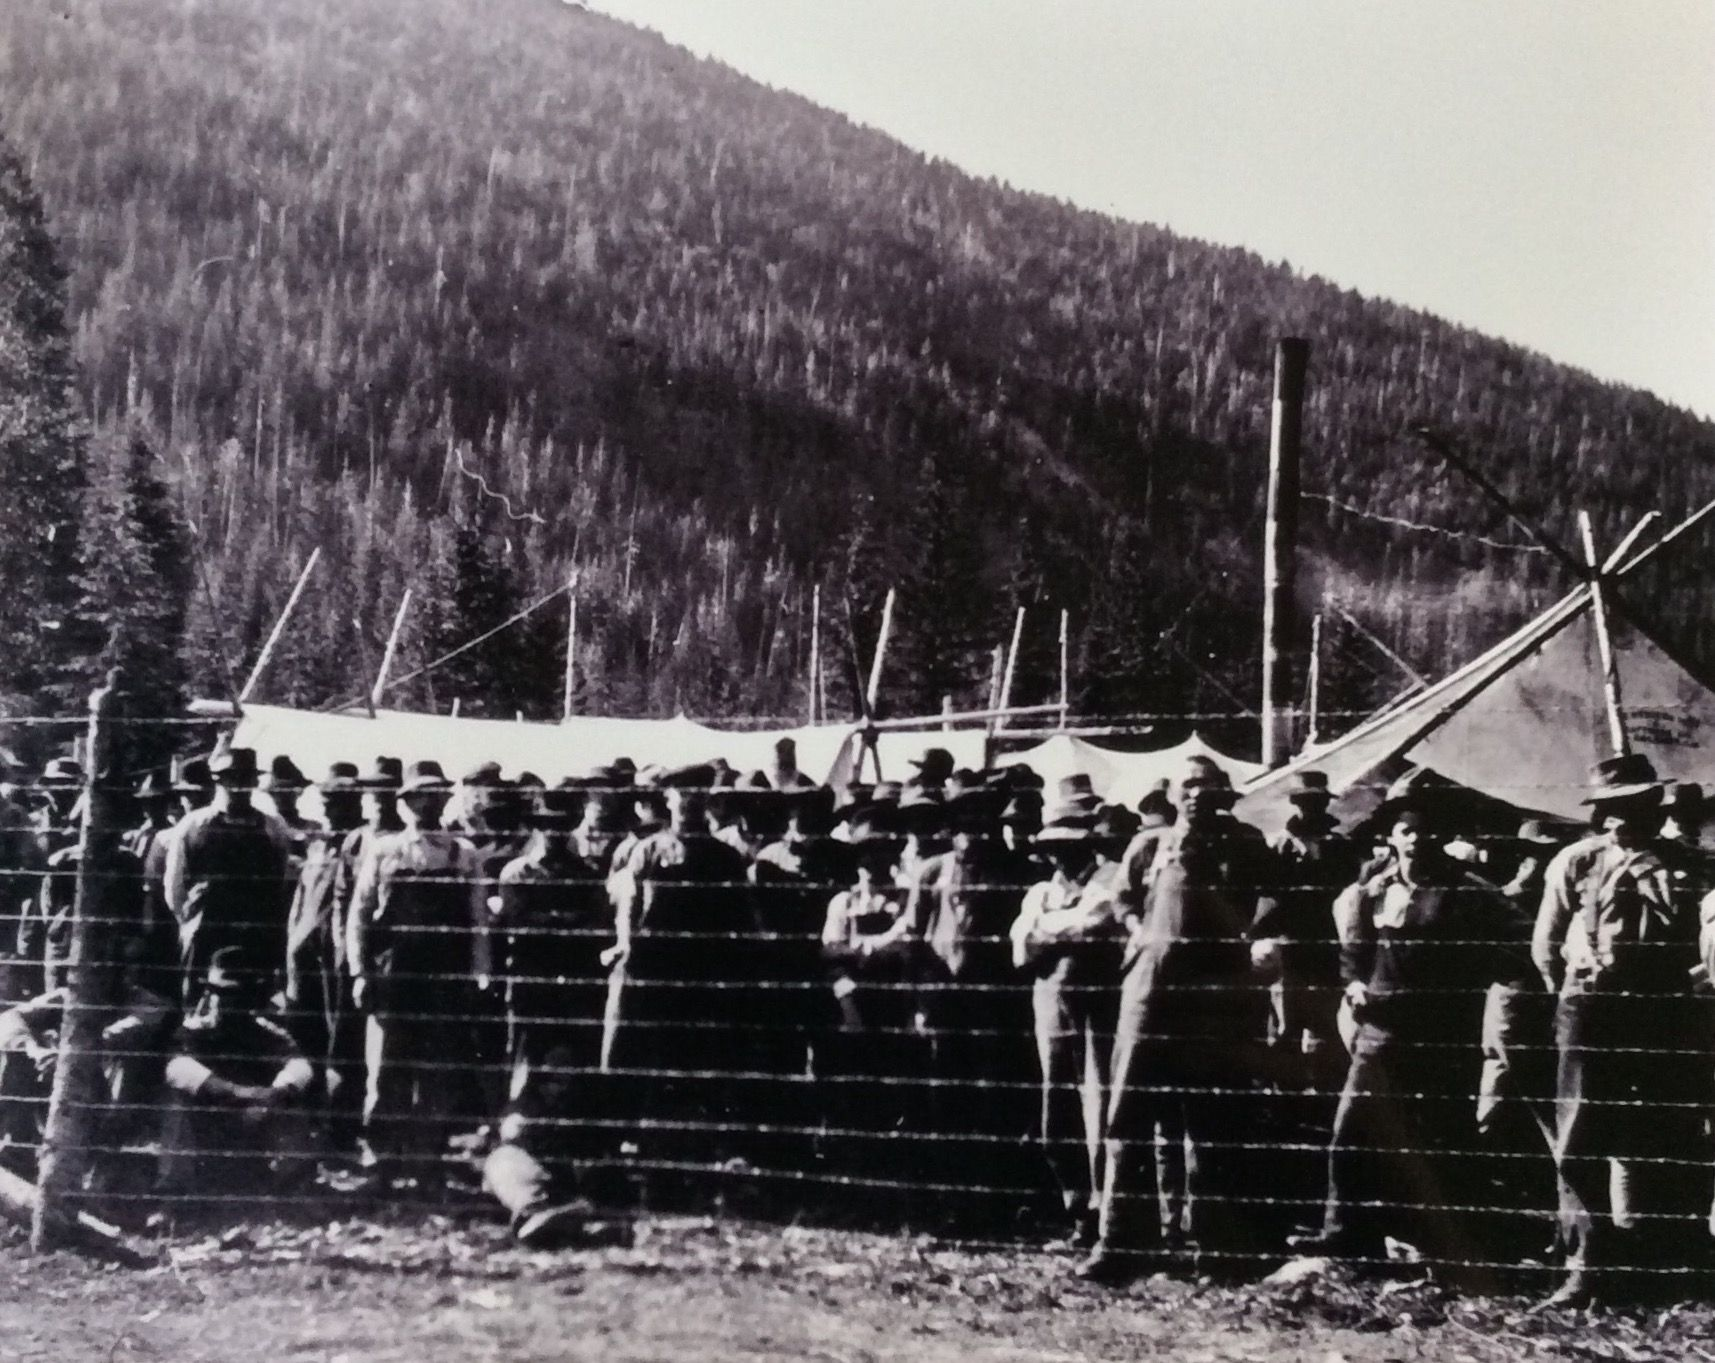 Men detained at the Monashee Mountain internment camp, located roughly 12 km from the Gold Panner Cafe now sits on Highway 6 in Cherryville.